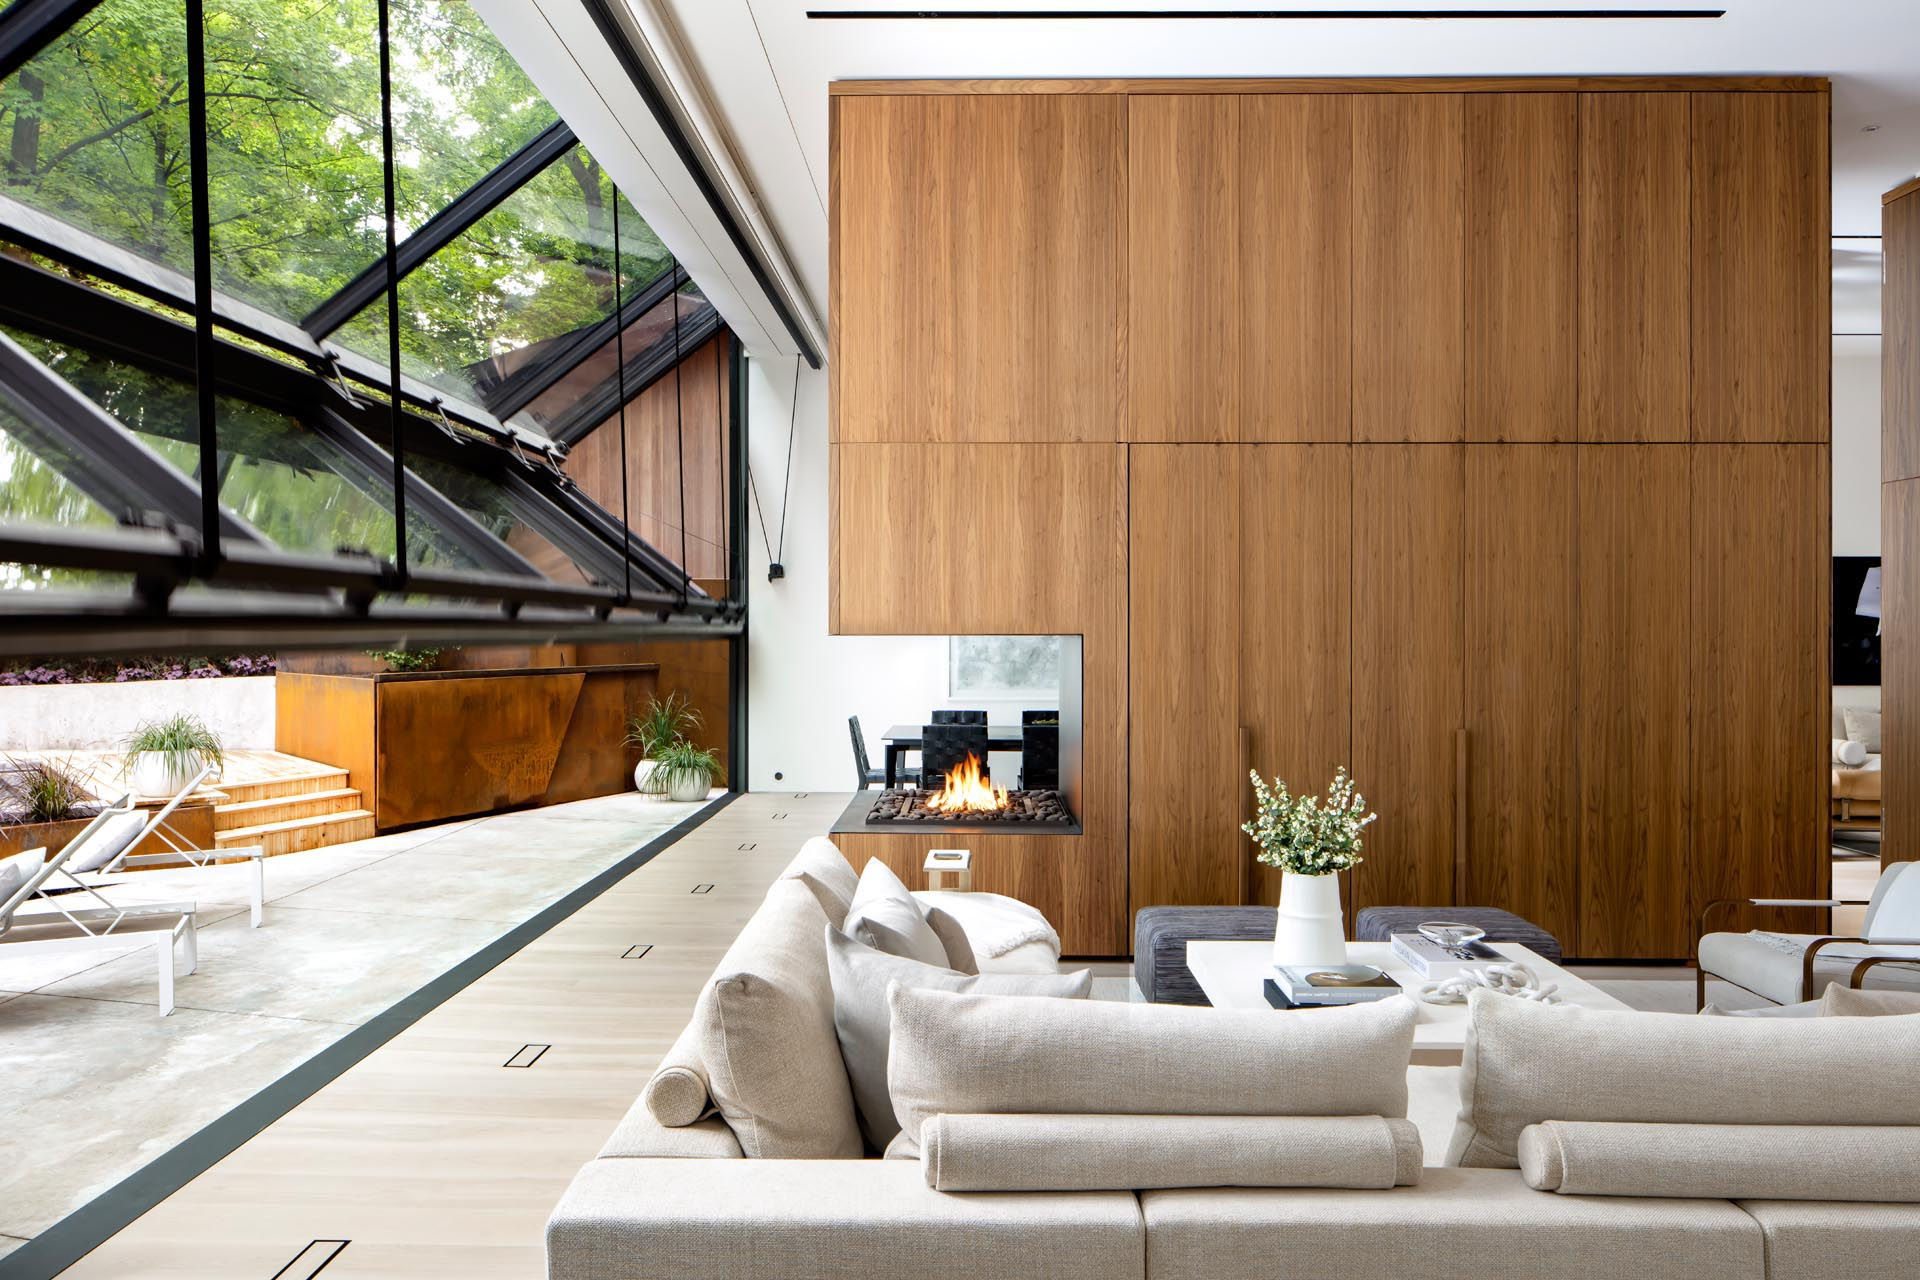 Multi-disciplinary atelier Ancerl Studio has designed a modern home in Toronto, Canada, and unique to the house, is a large 40 foot folding glass wall that folds open.